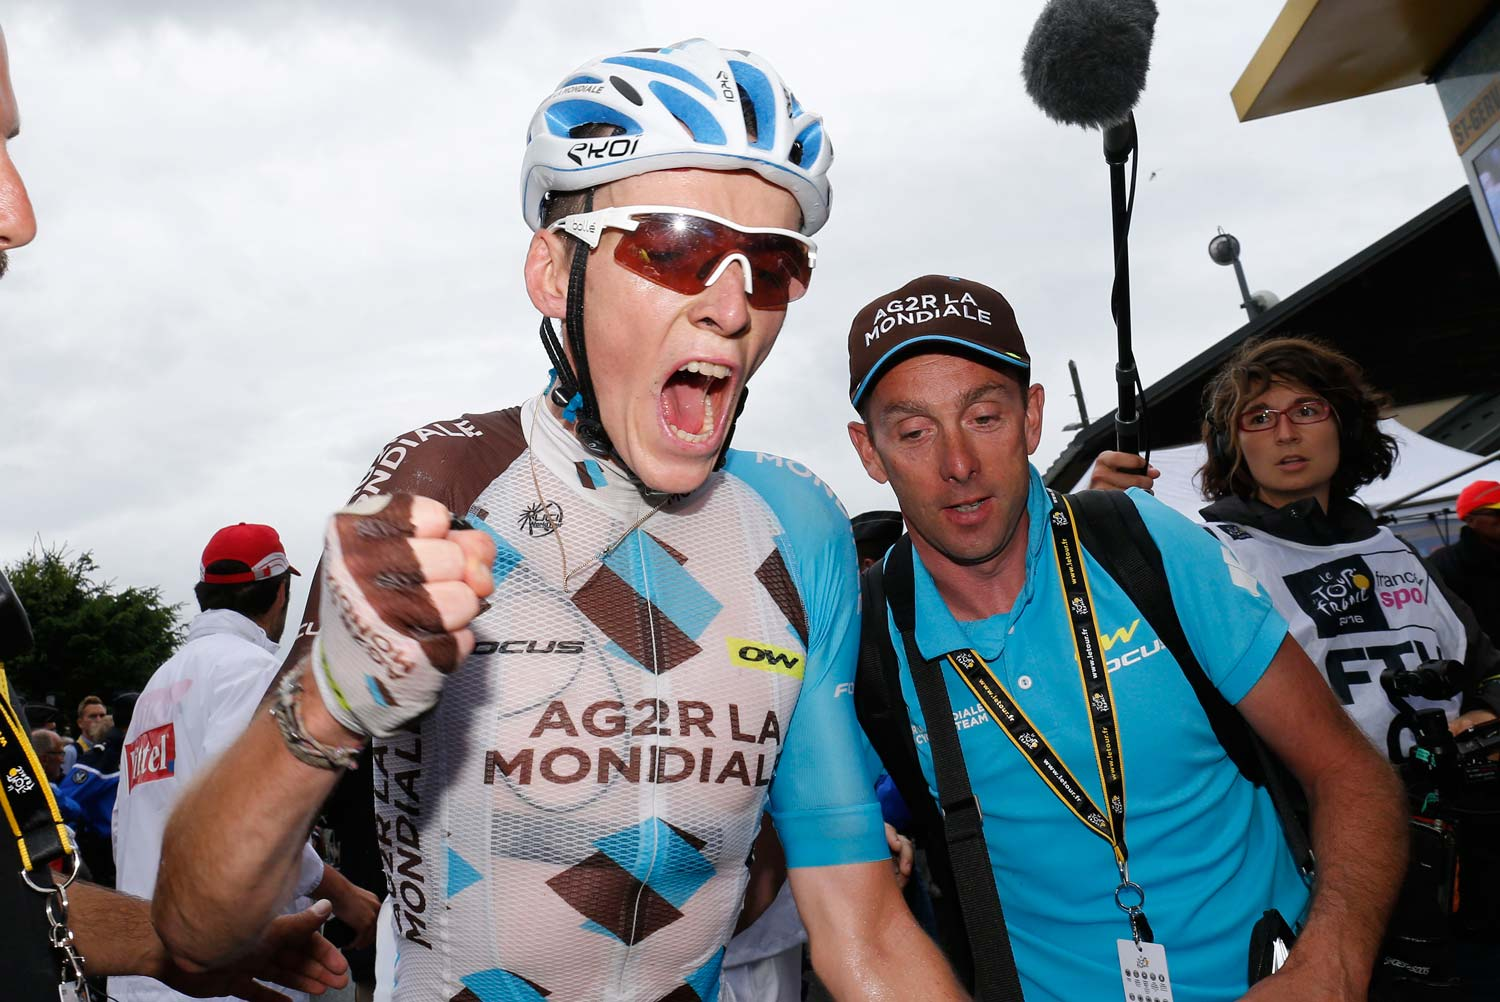 Good things come to those who wait. Romain Bardet has won a stage in the final week of both the 2015 and 2016 Tours de France. Photo: Yuzuru Sunada